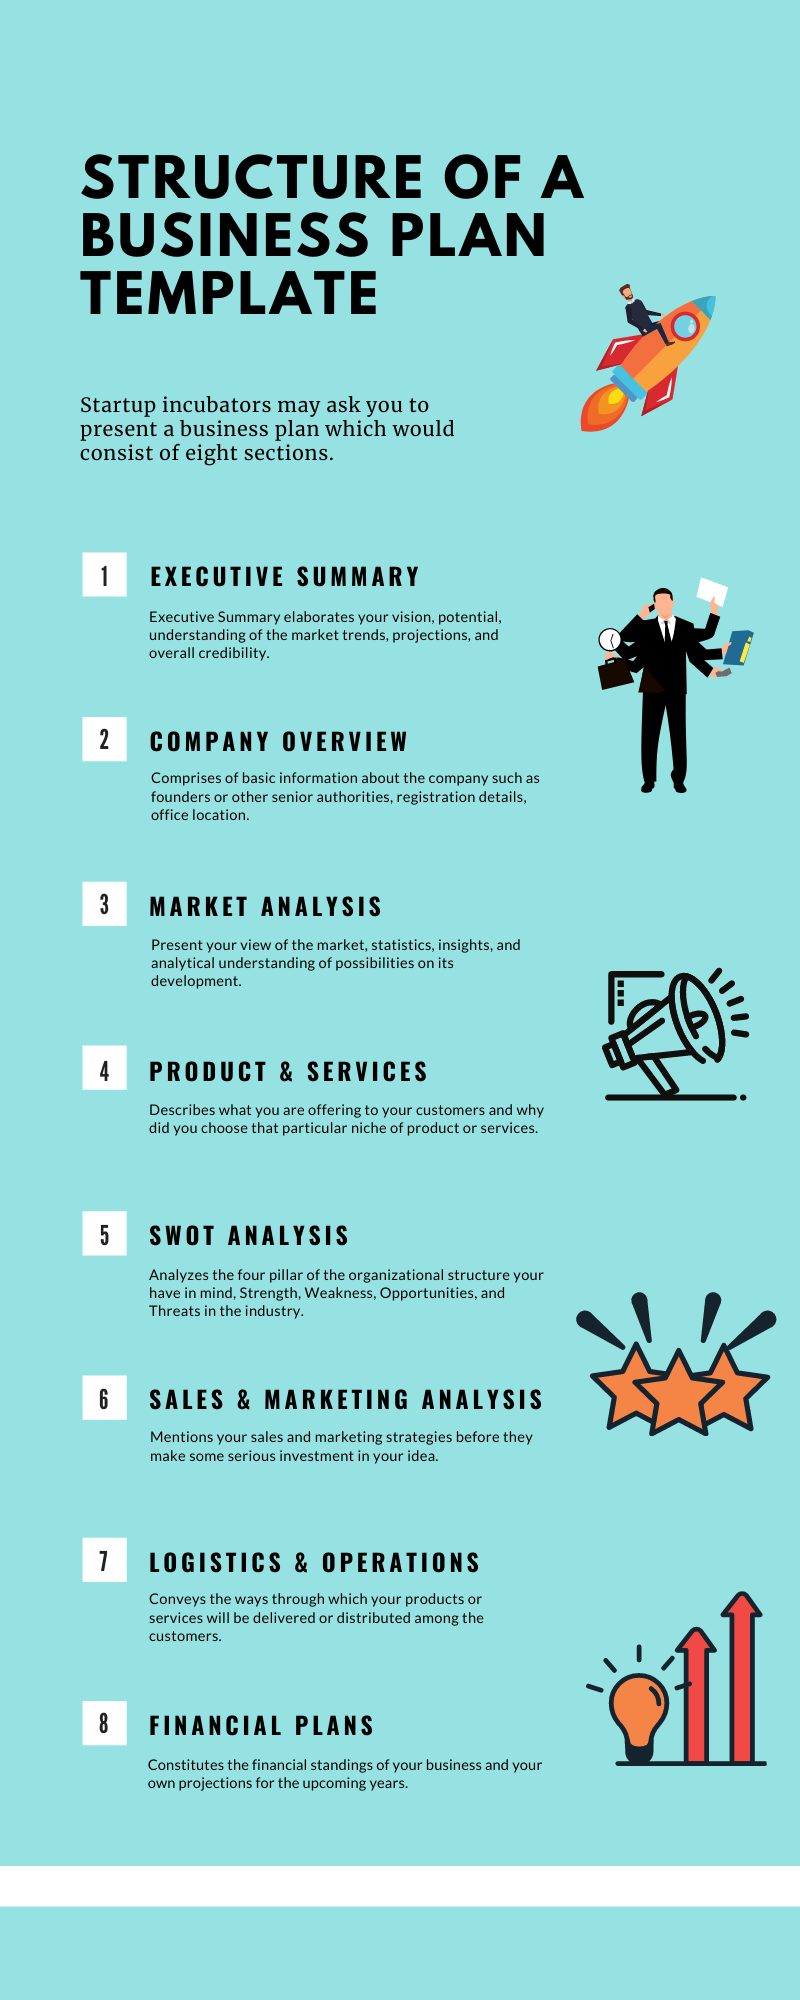 Structure of a Business Plan Template Infographic